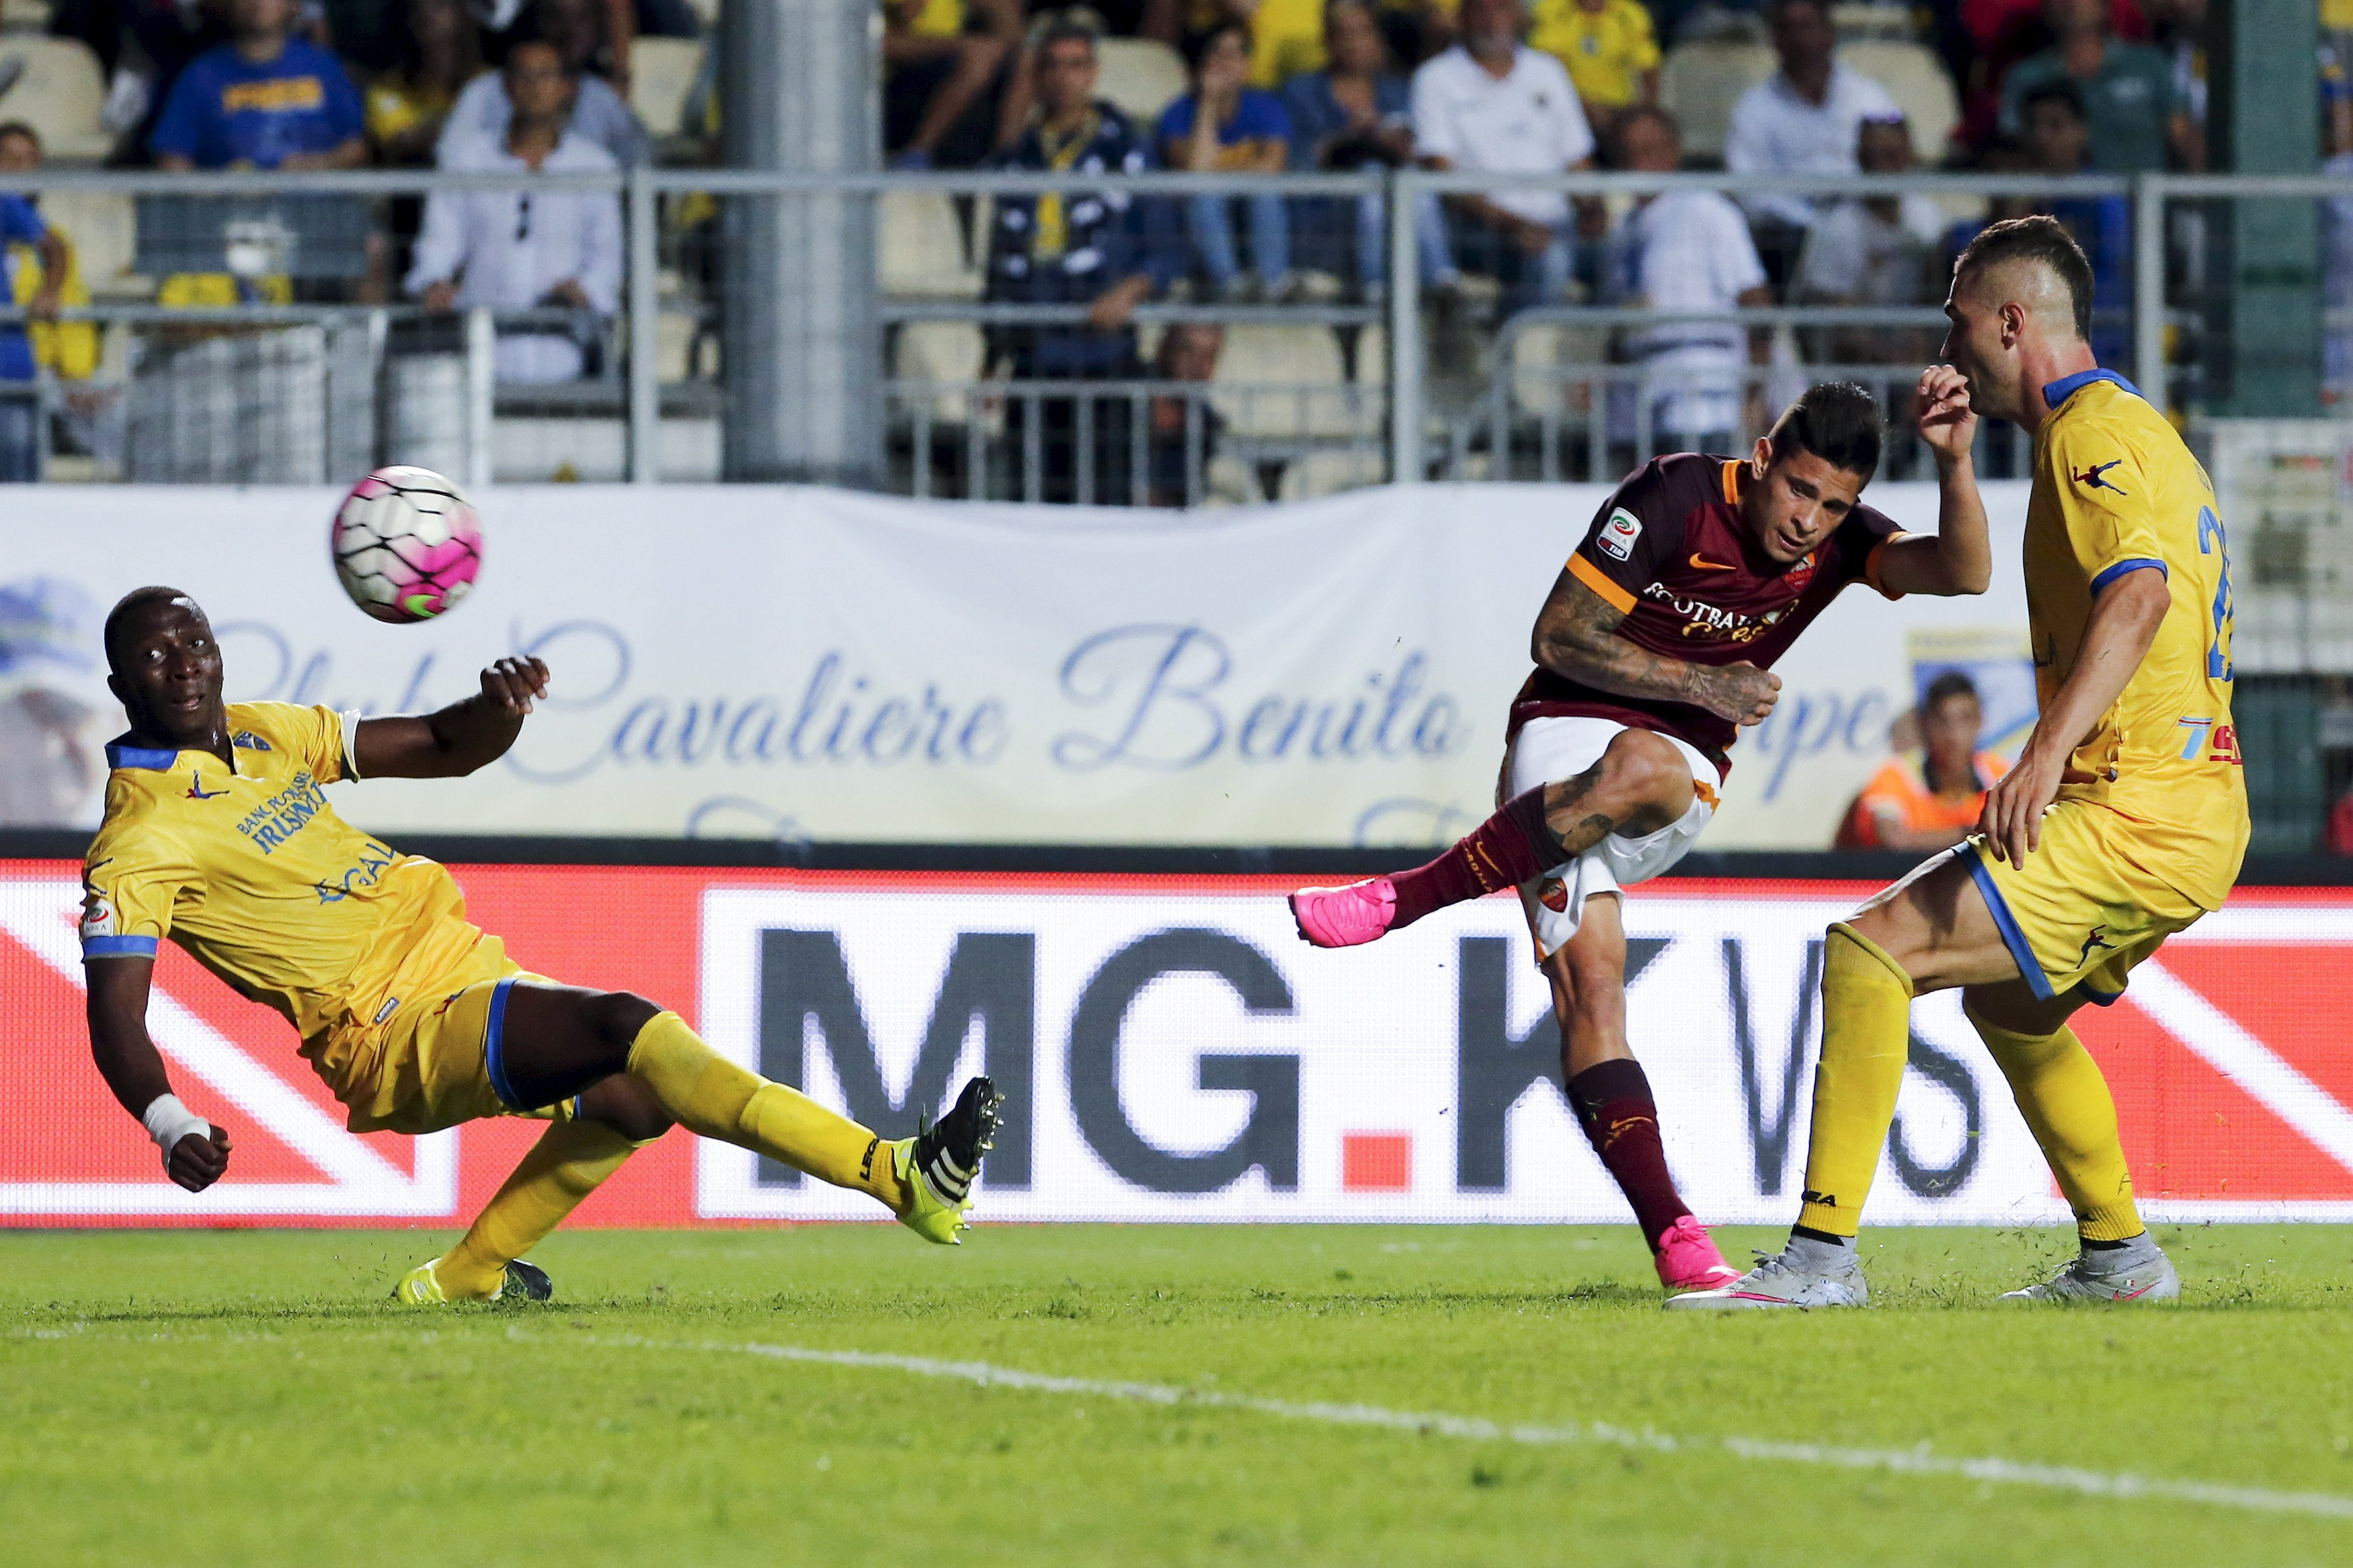 AS Roma's Iturbe scores against Frosinone during their Serie A soccer match in Frosinone